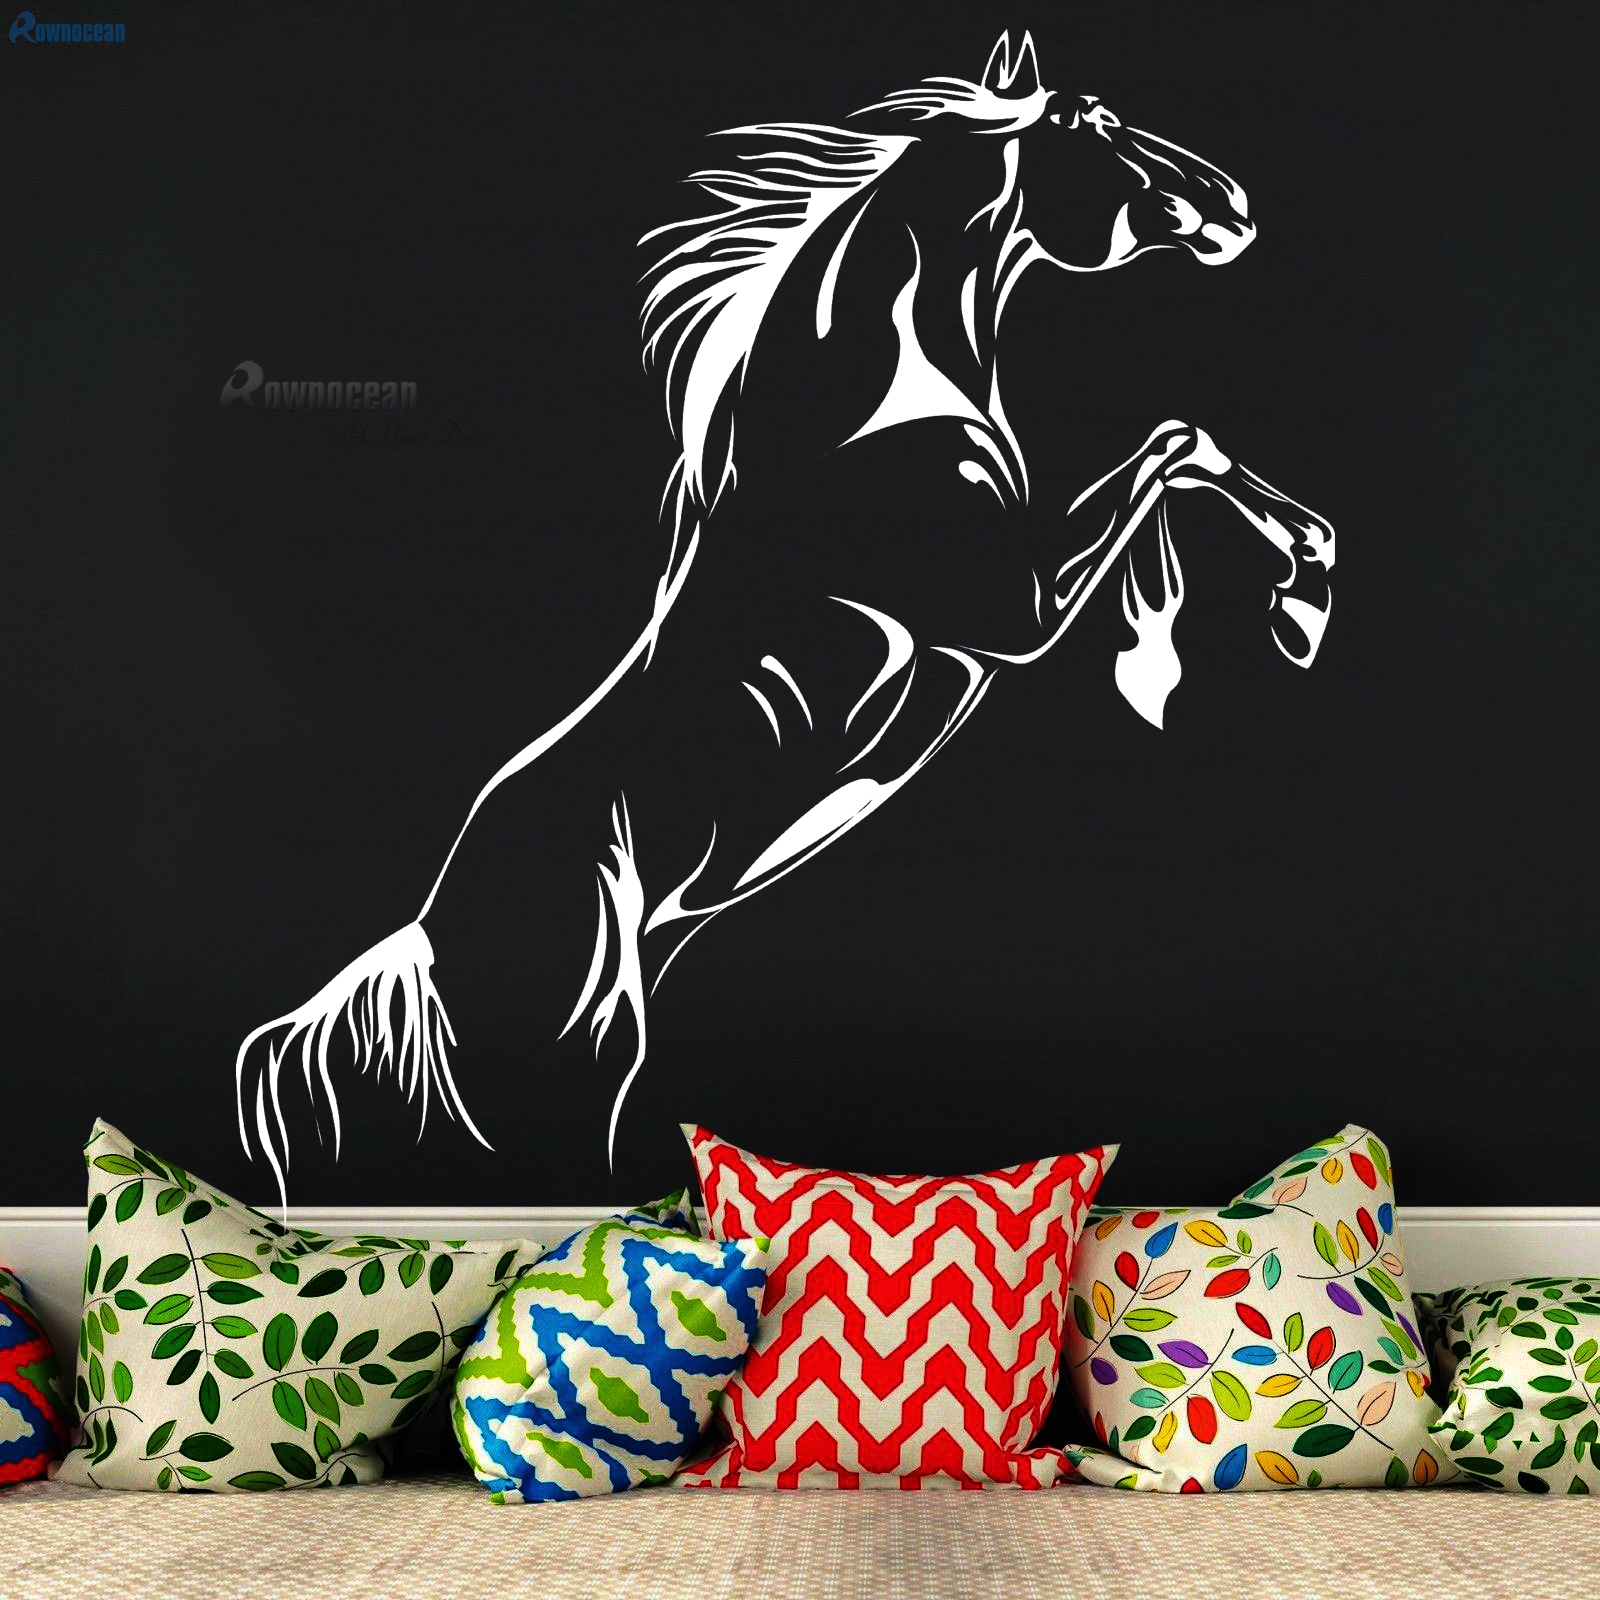 Creative Animals Running Horse Interior Wall Stickers For Kids Rooms Art Home Decor Living Room Vinyl Watertight Removable D-13